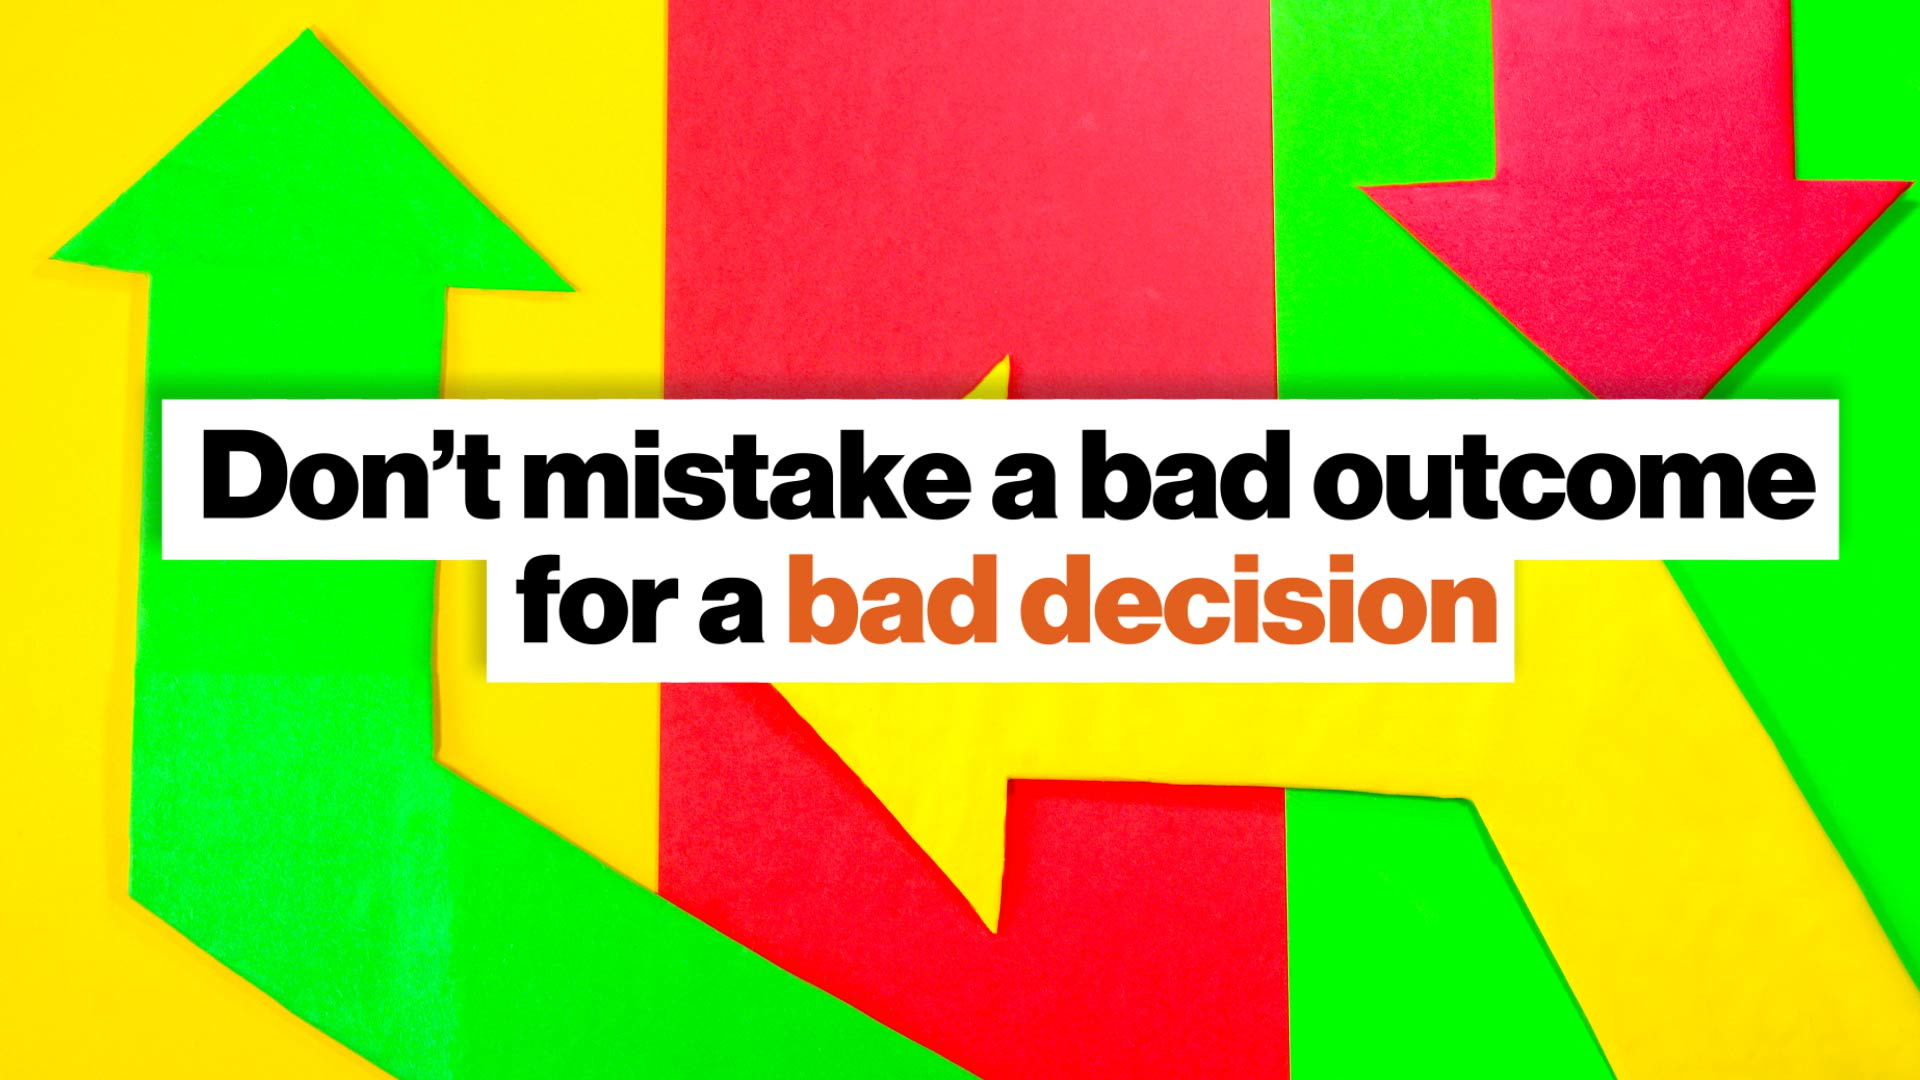 Resulting : Don't mistake a bad outcome for a bad decision